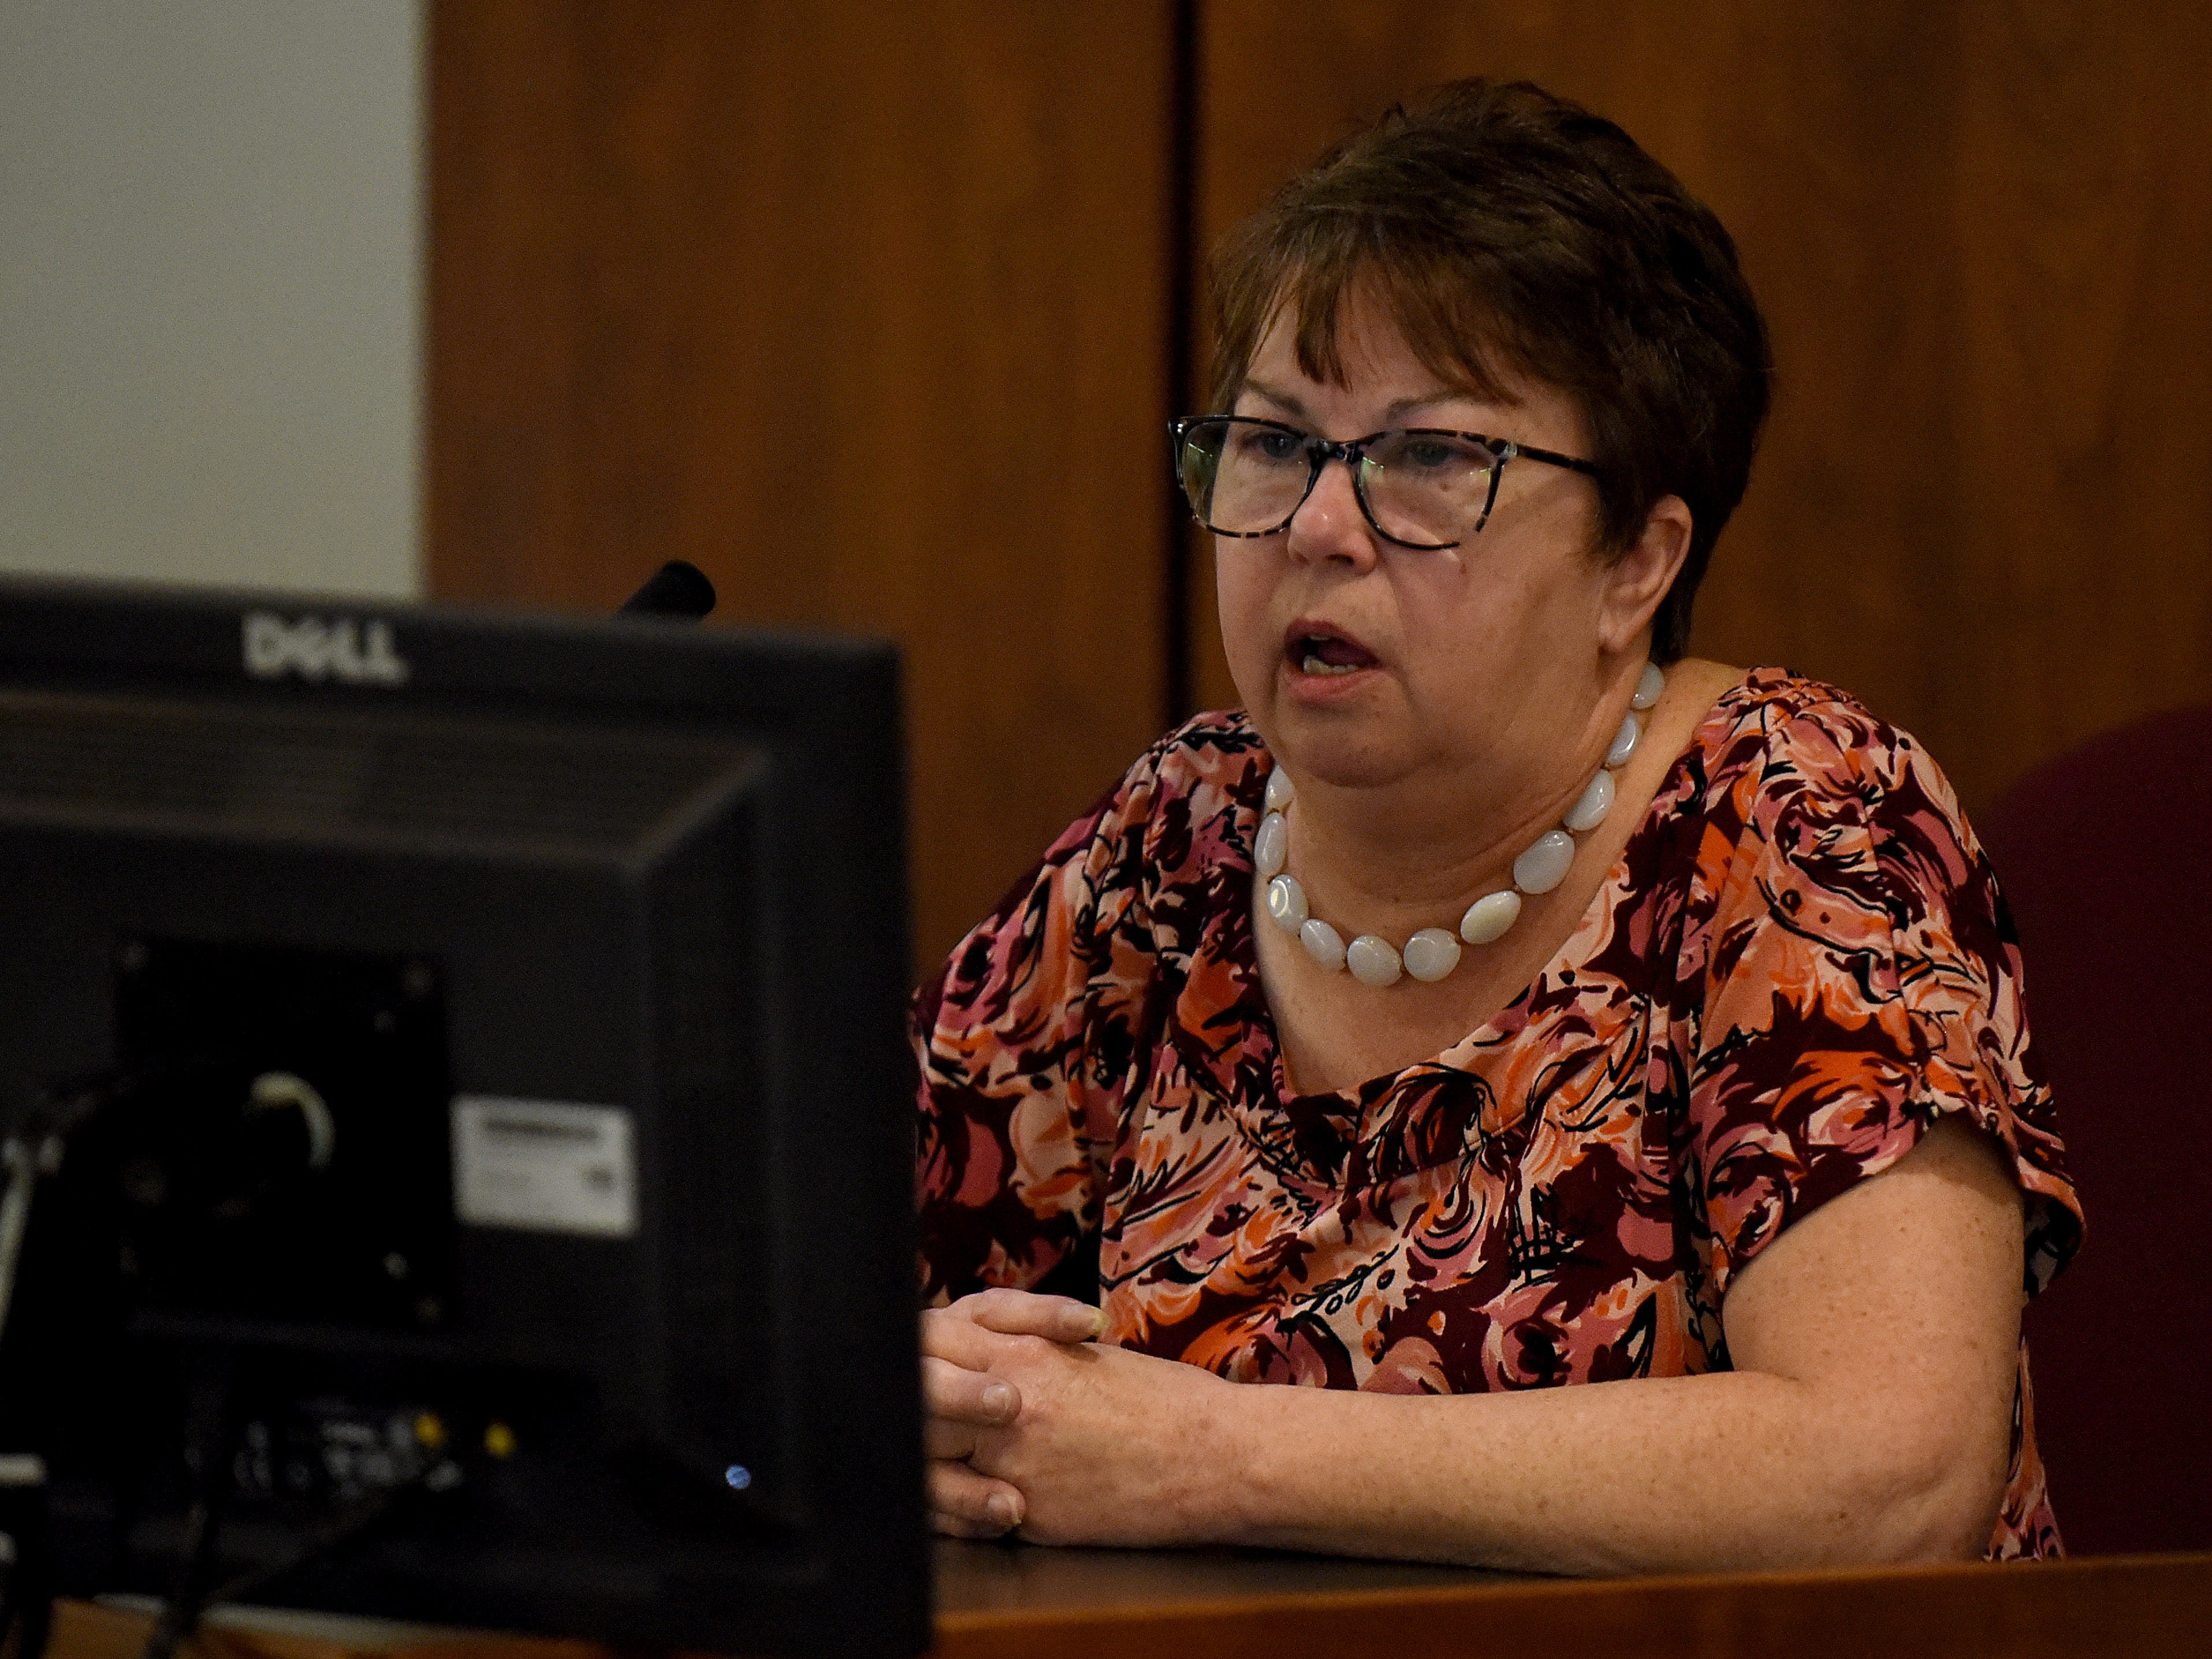 Newark City School bus driver Patty Hughes watches video footage from the bus while testifing during Newark Police Chief Barry Connell's trial for a traffic citation. Connell was found guilty of passing a stopped school bus and visiting Judge Guy Reece II from Franklin County imposed a $100 fine in court costs.